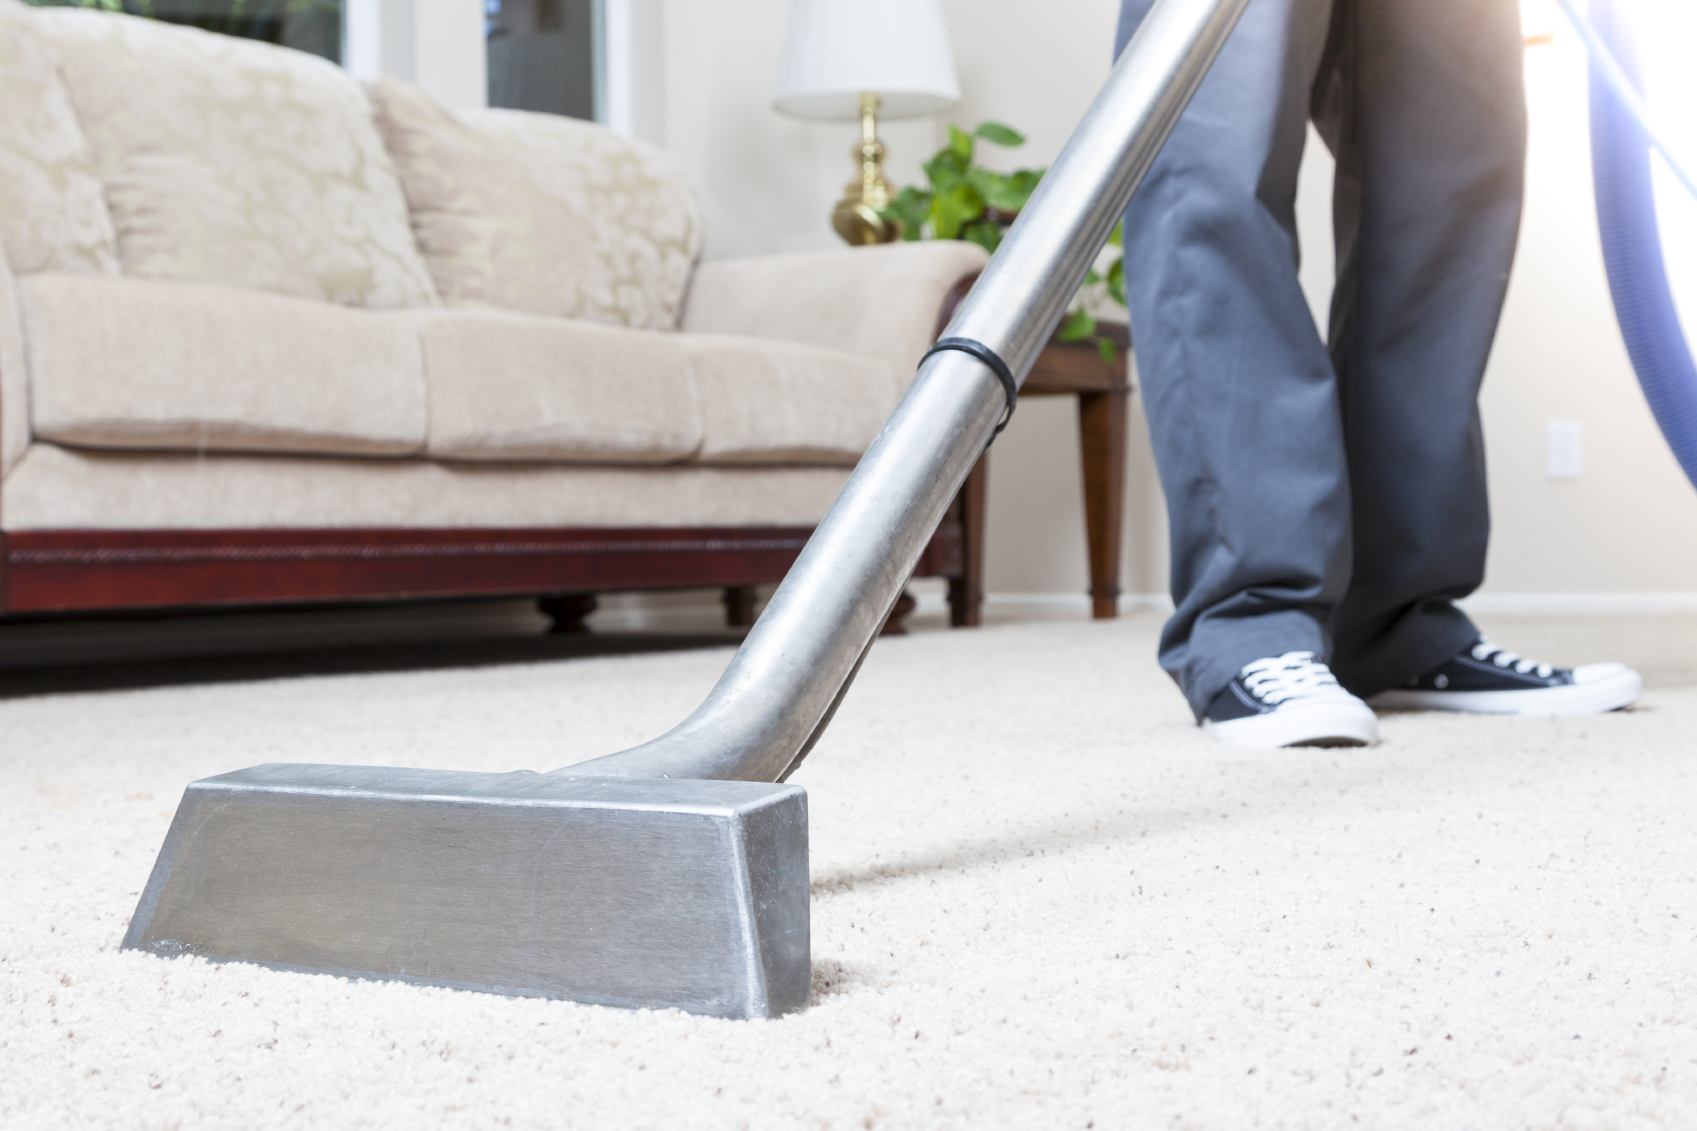 Choose our services for carpet cleaning in Liverpool